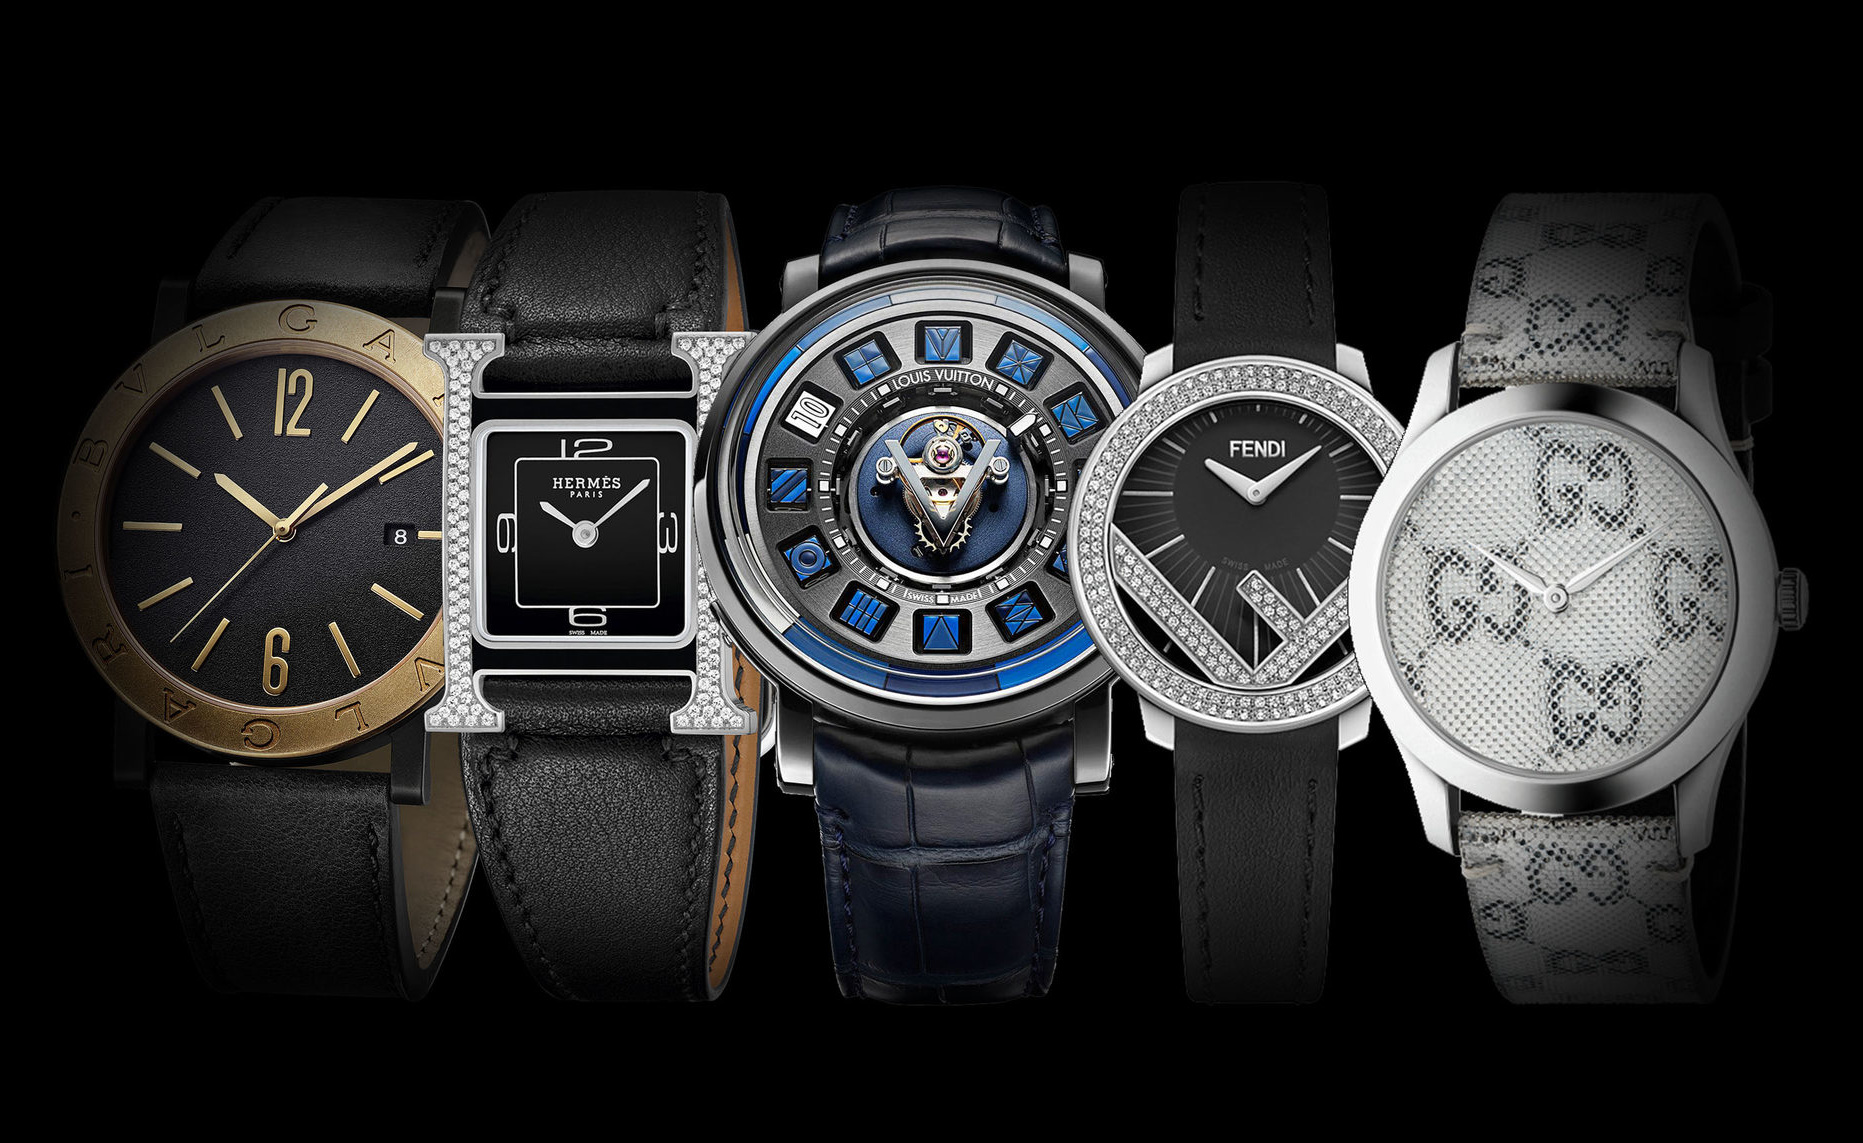 7df5b4aac8c Logo A Go Go - Five Fashion Brands Making Their Mark On The Watch Industry